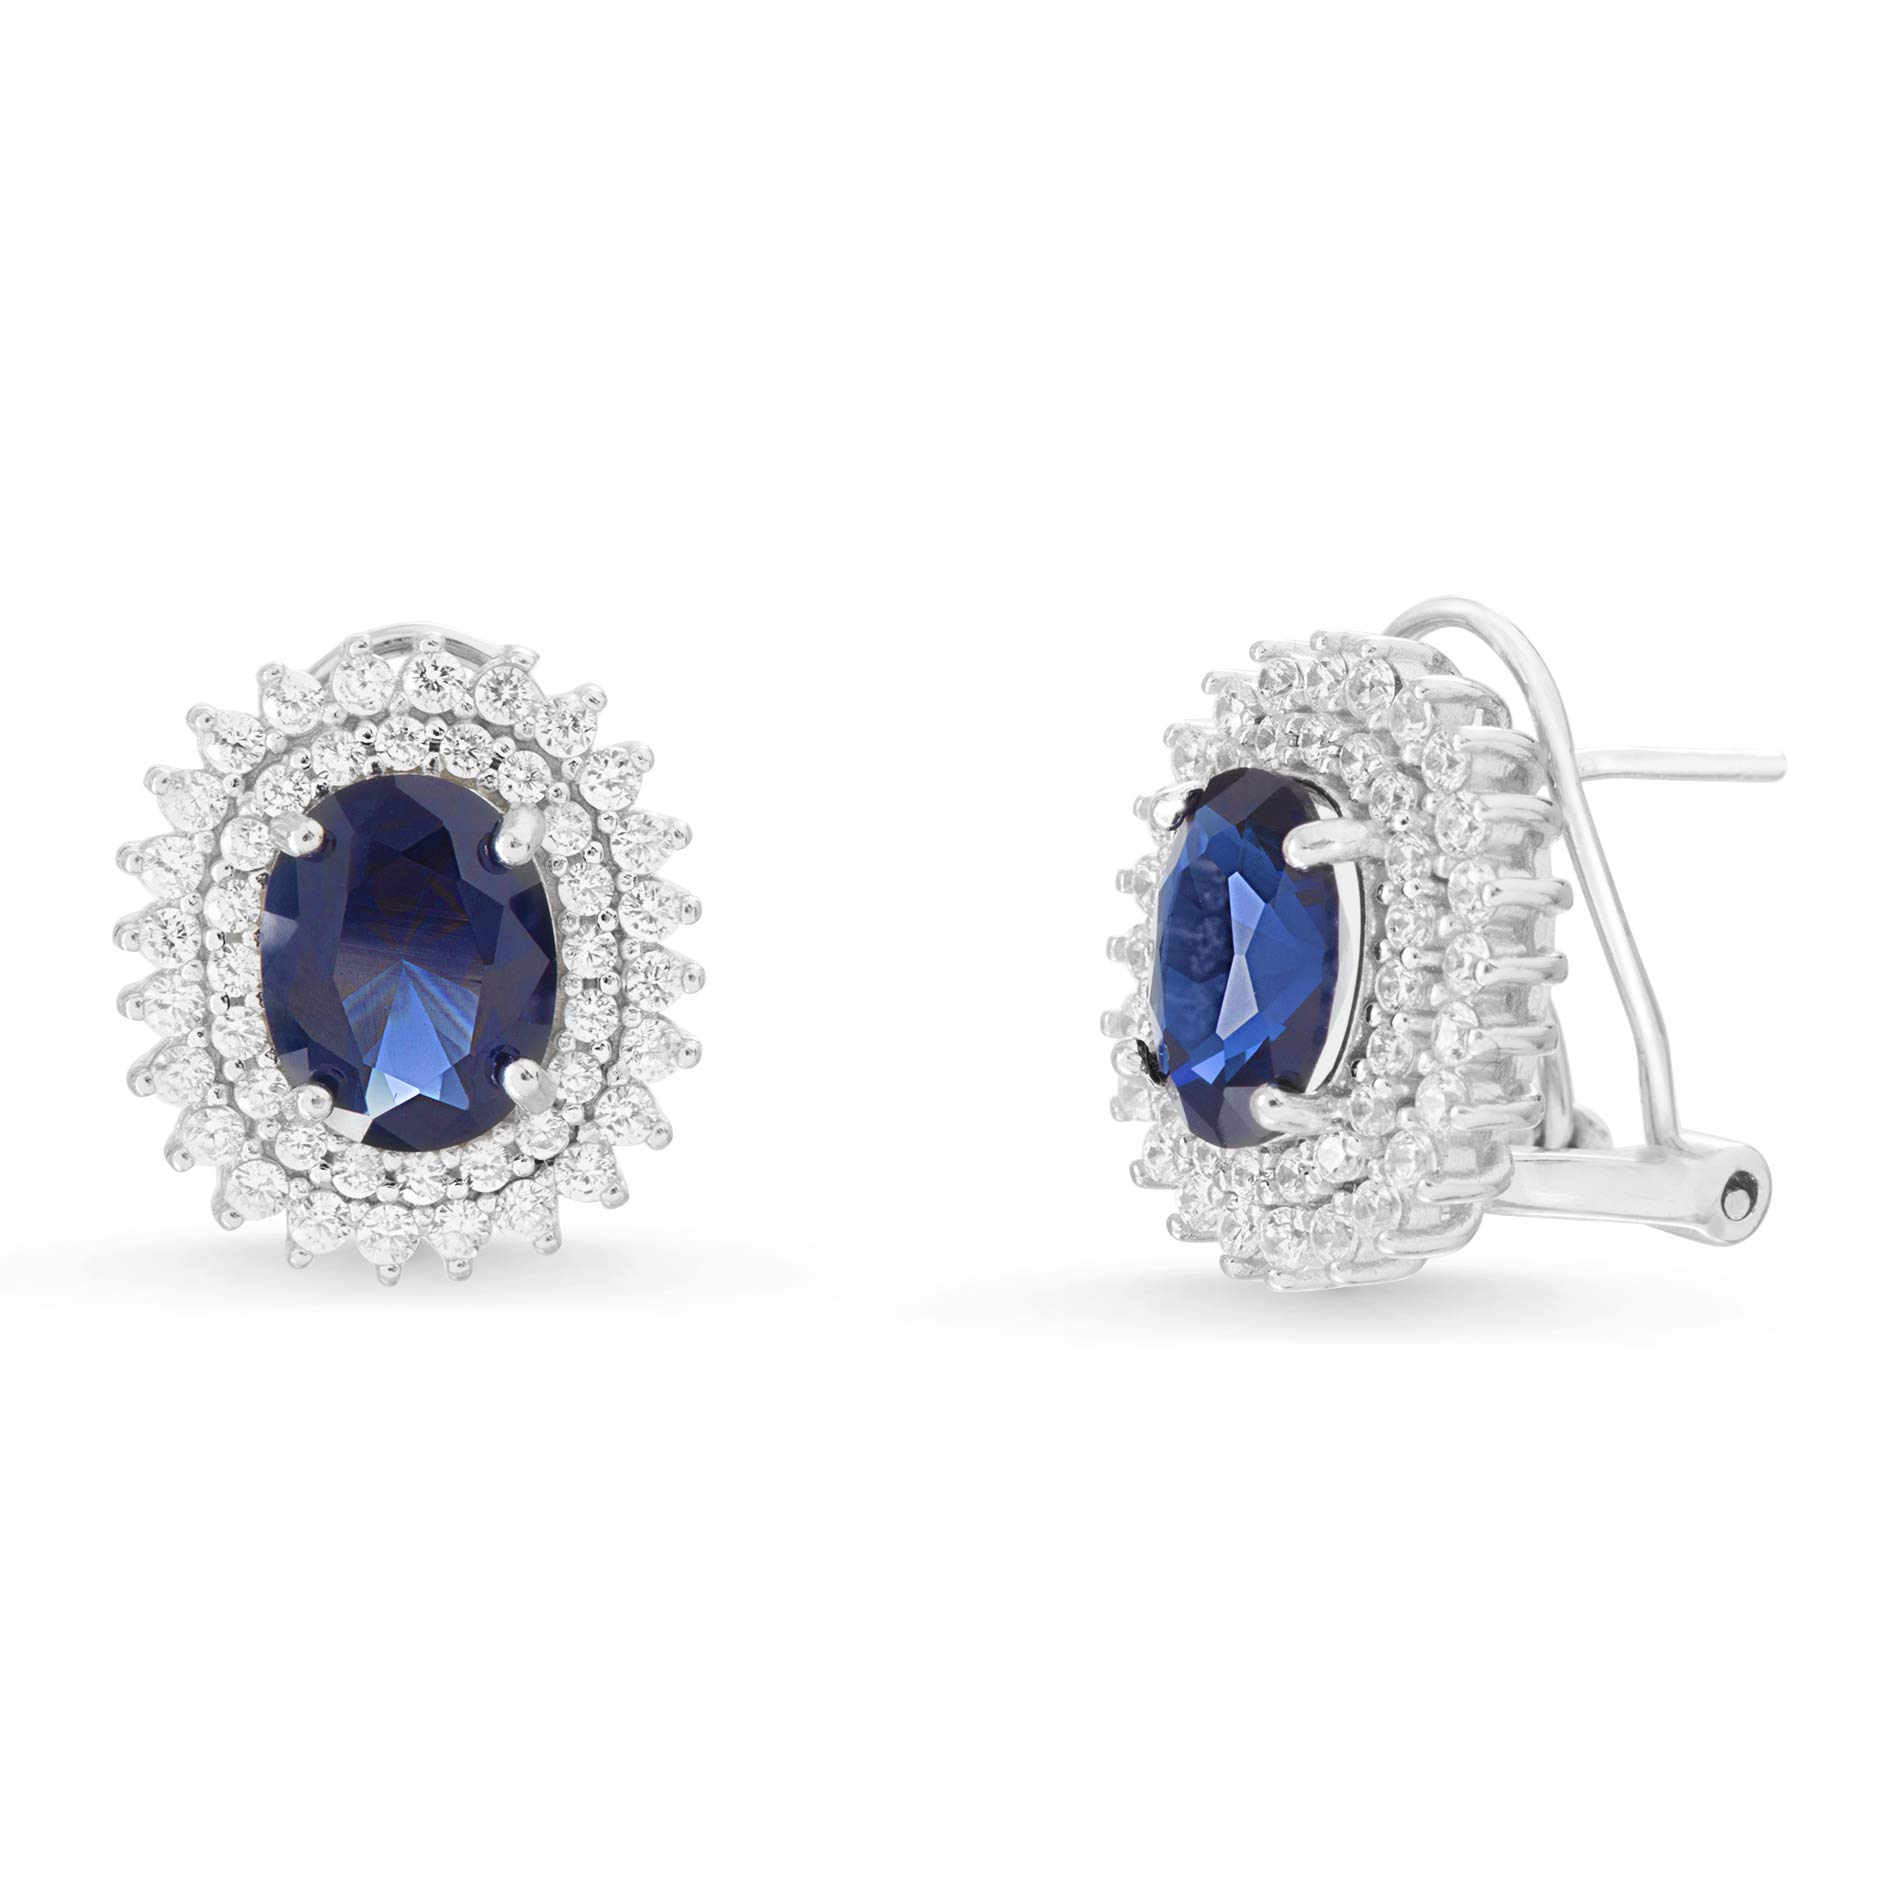 MIA SARINE Sterling Silver Oval Cut Simulated Blue Sapphire and Cubic Zirconia Bridal Stud Earrings for Women with Omega Backs